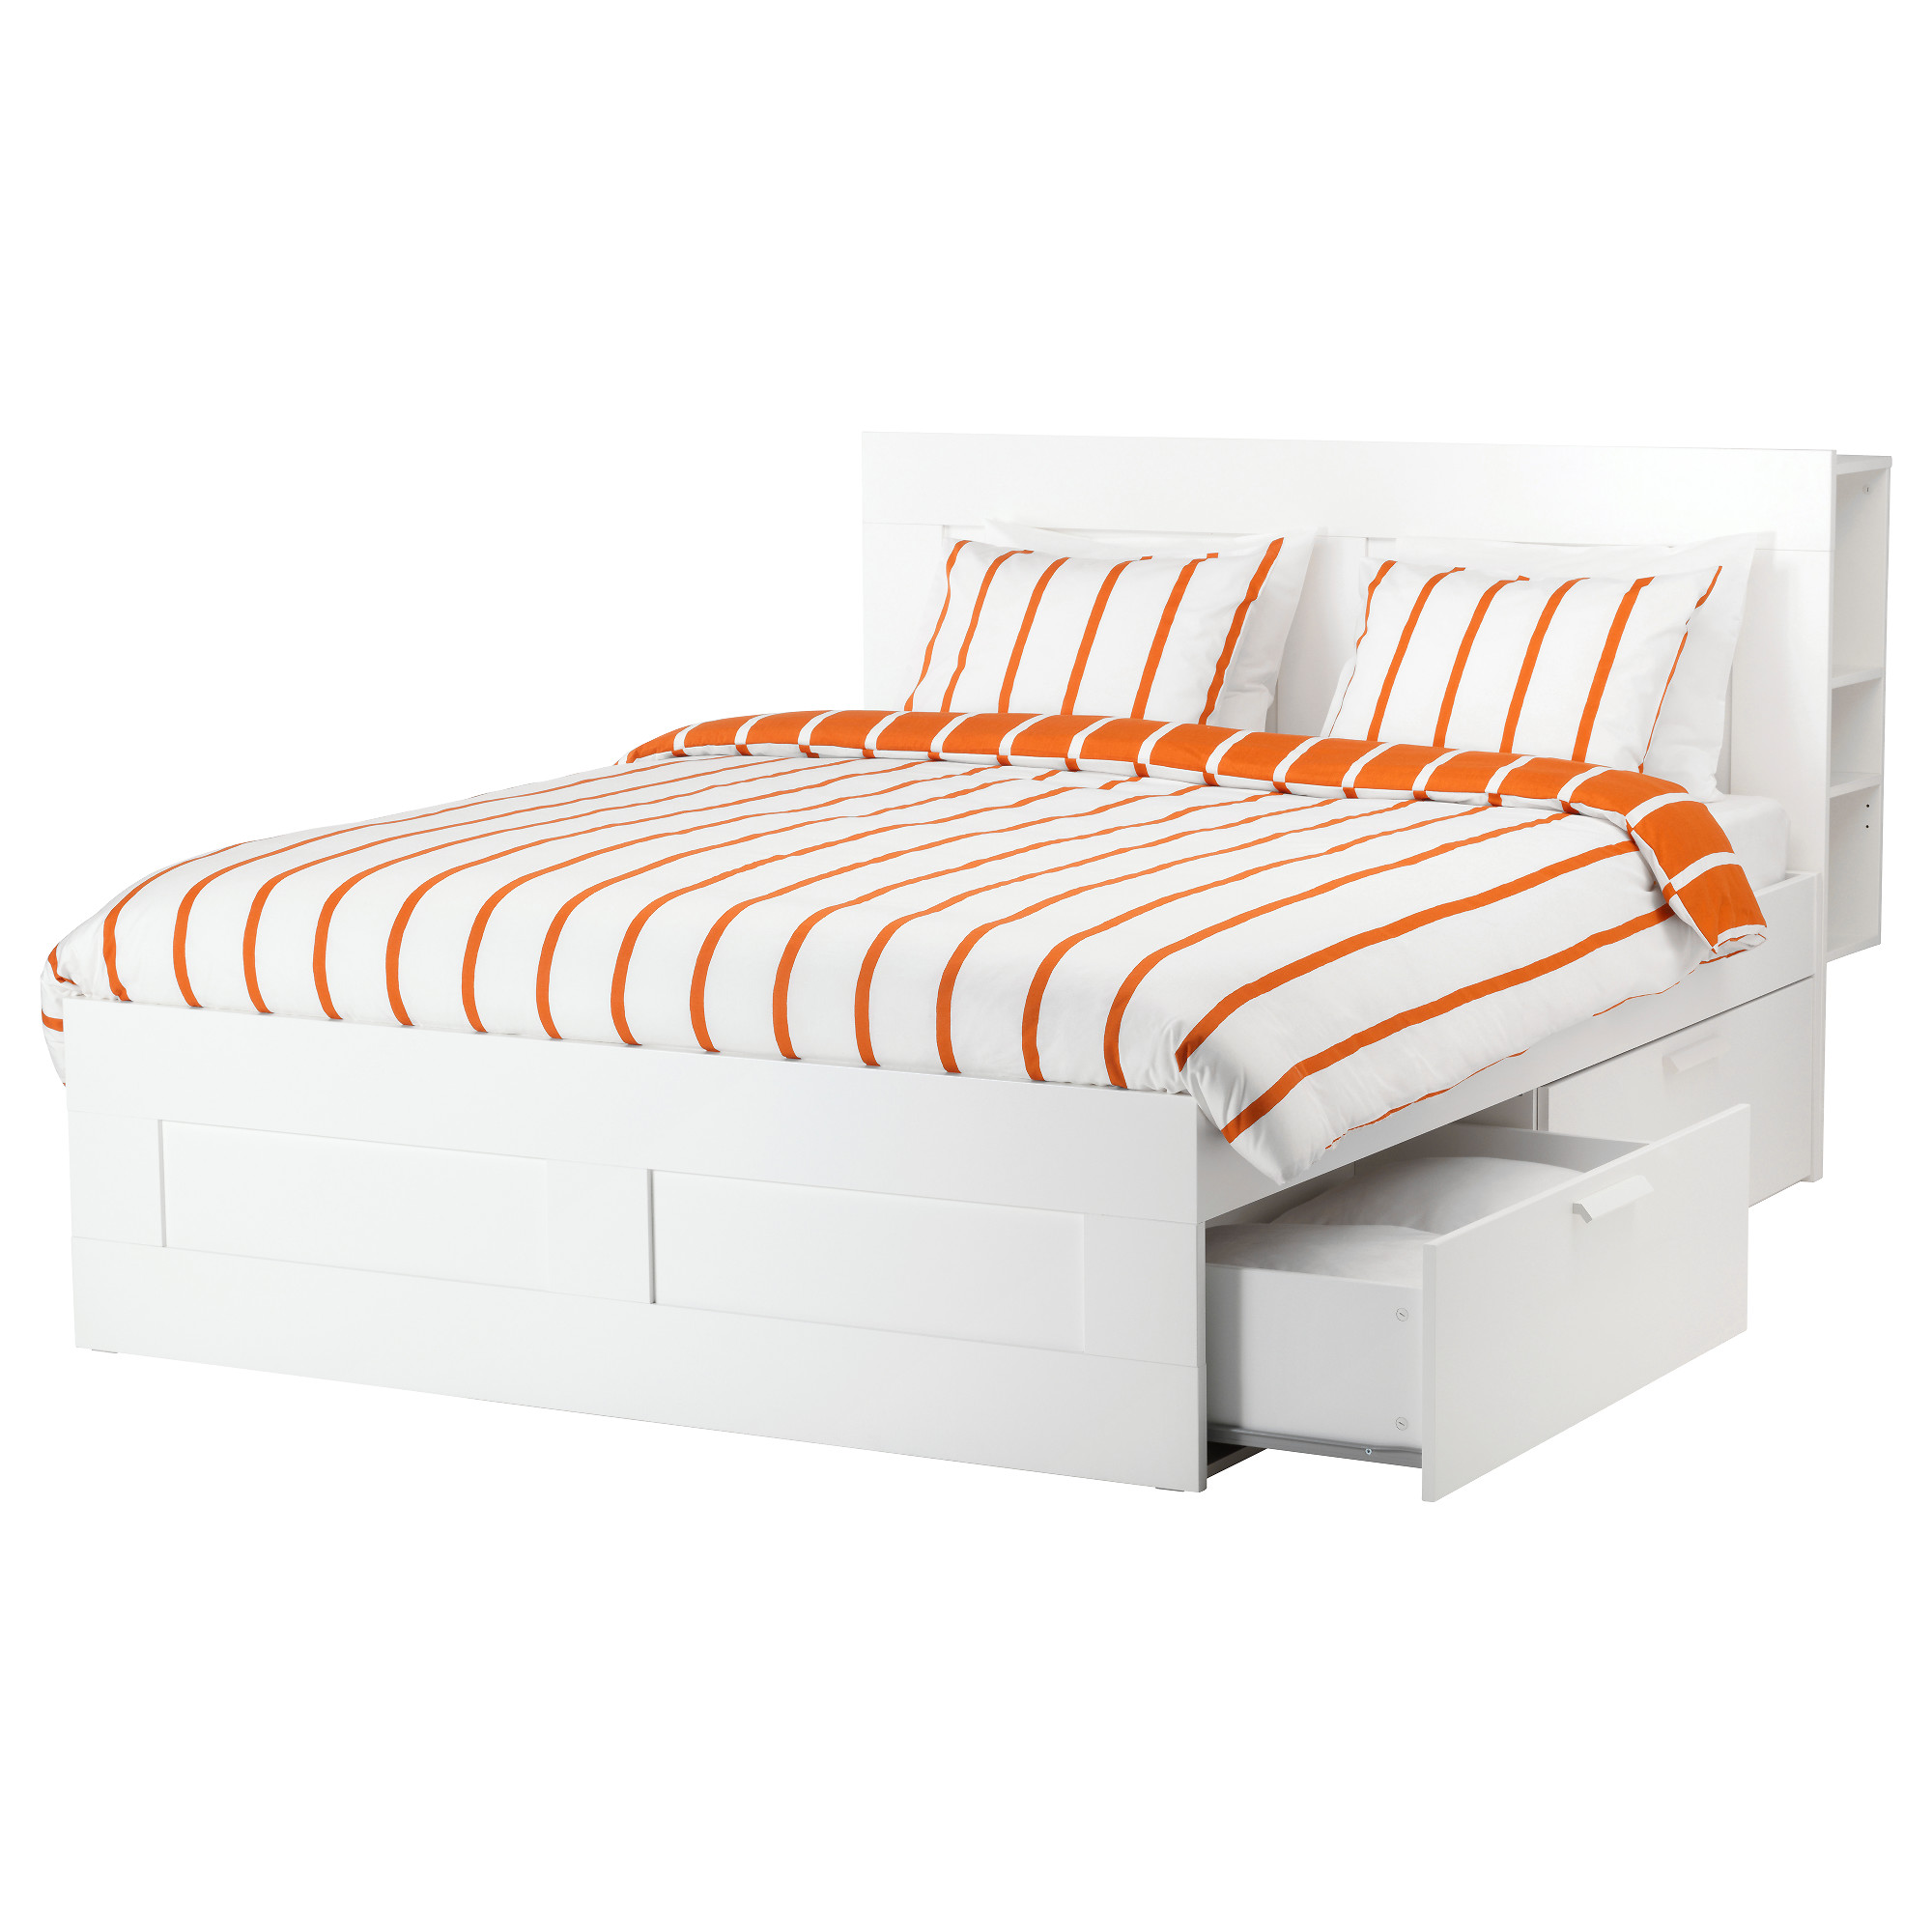 Orange And White Stripped Bed With Ikea Frame Drawers